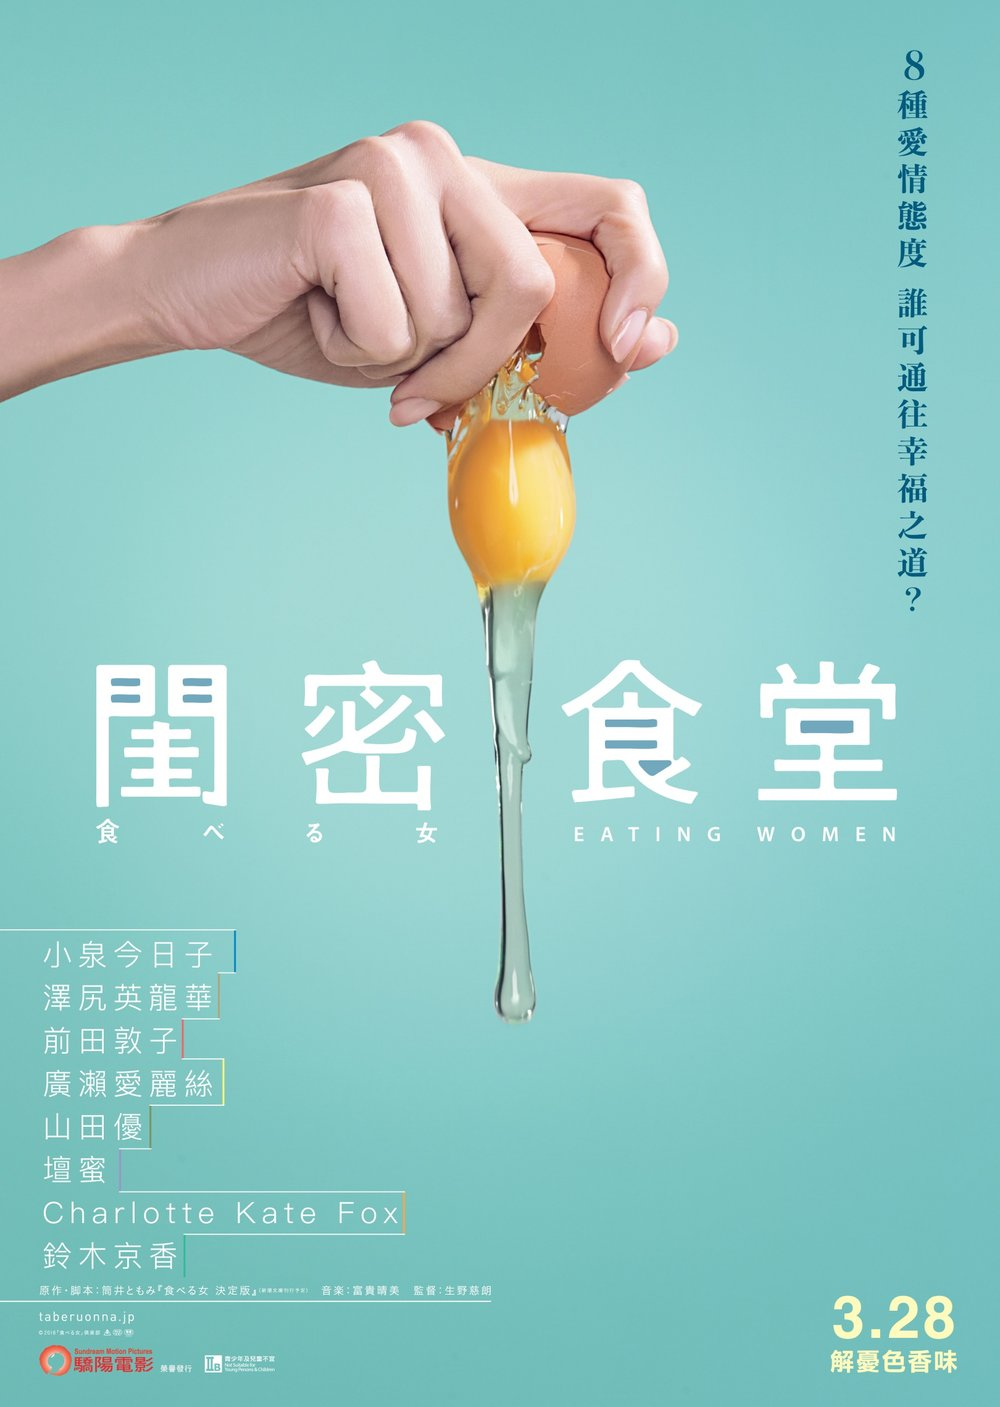 20190208_EatingWomen_Poster.jpg